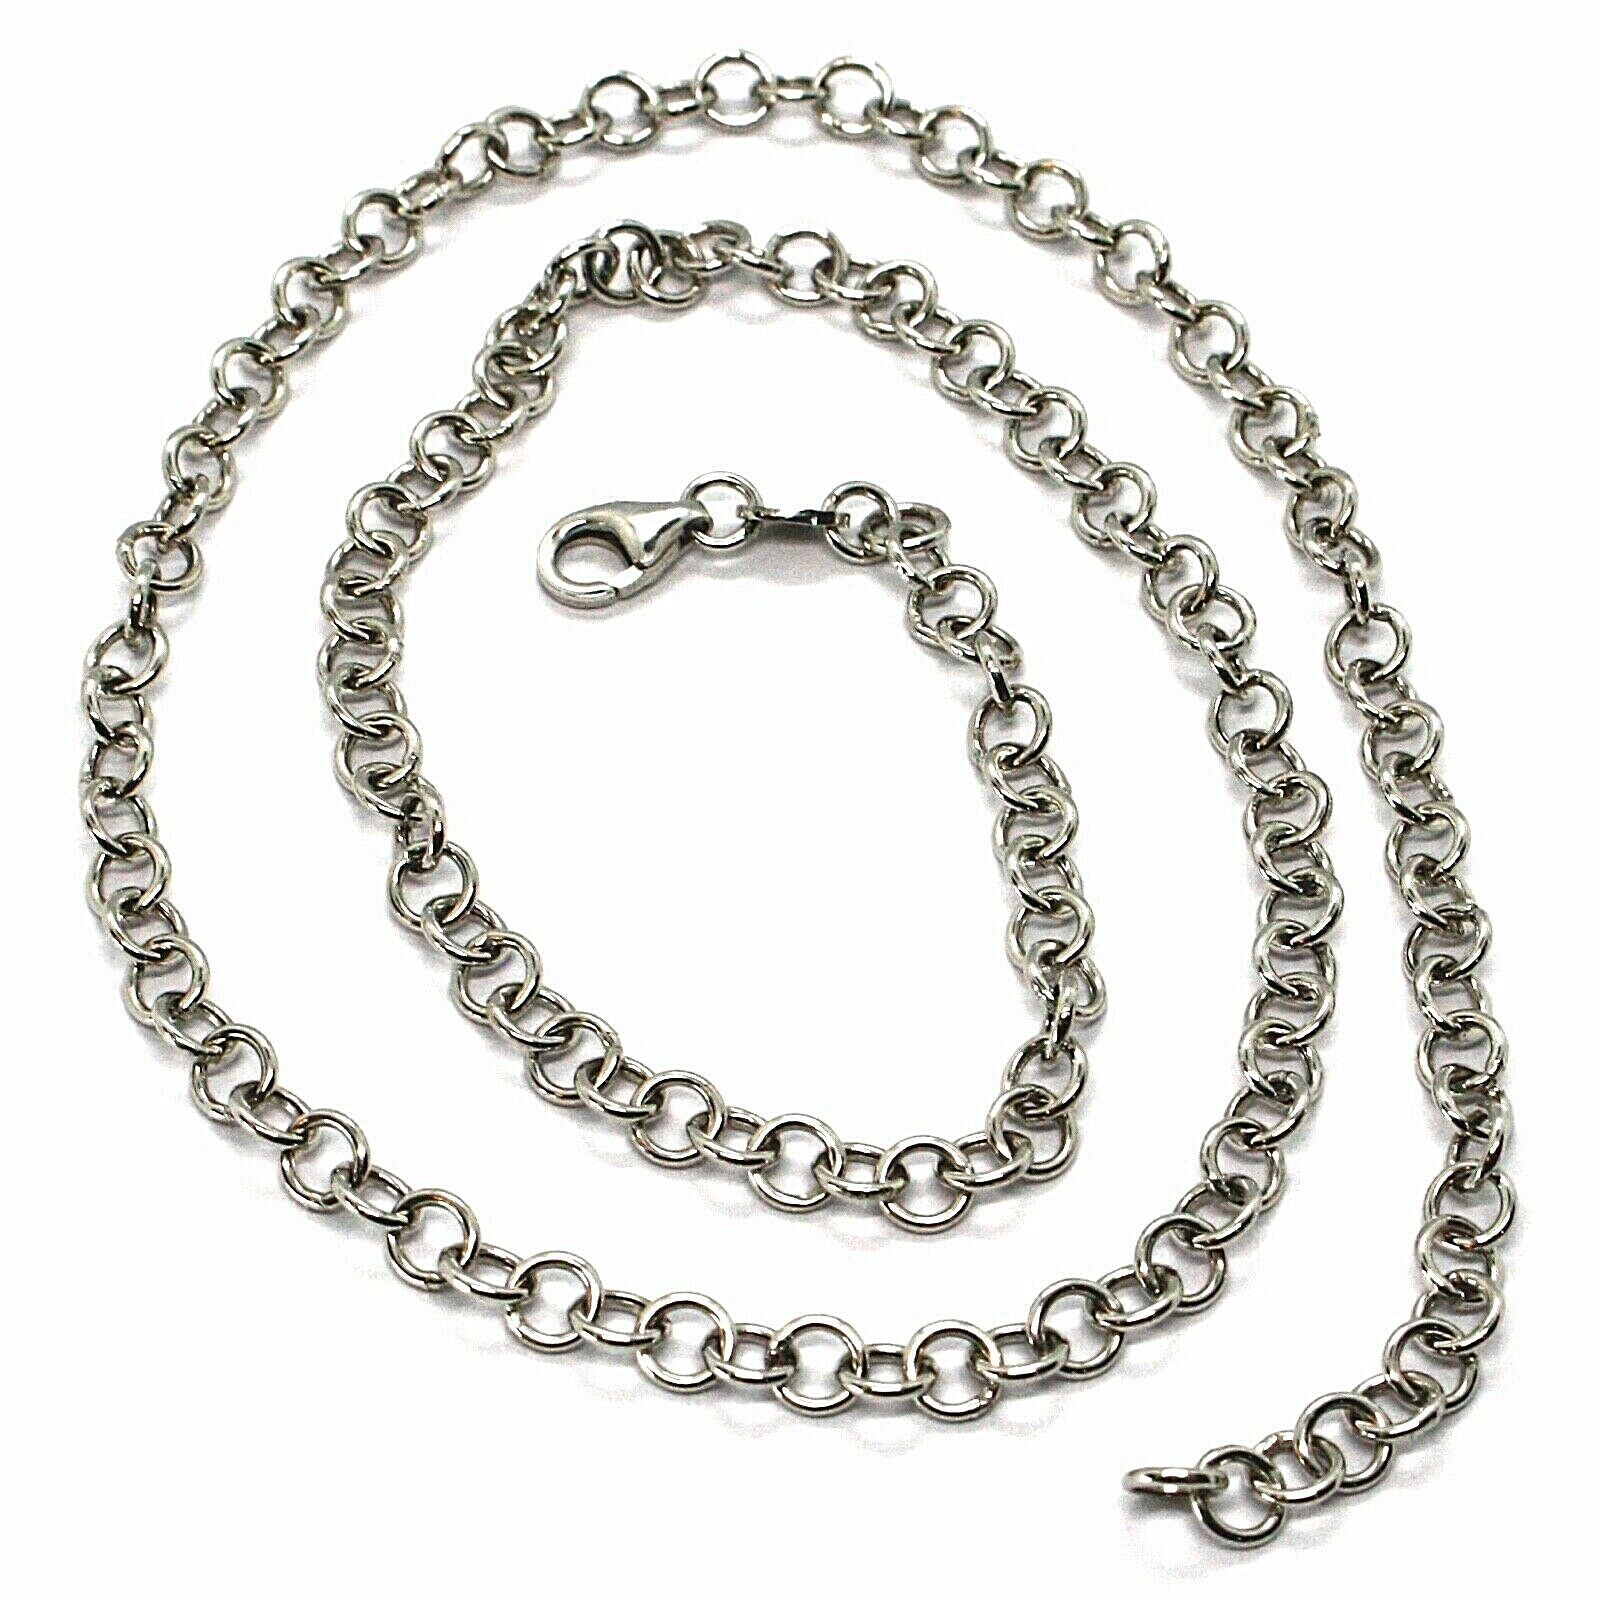 SOLID 18K WHITE GOLD CHAIN 17.70 IN, ROUND CIRCLE ROLO LINK, 4 MM MADE IN ITALY